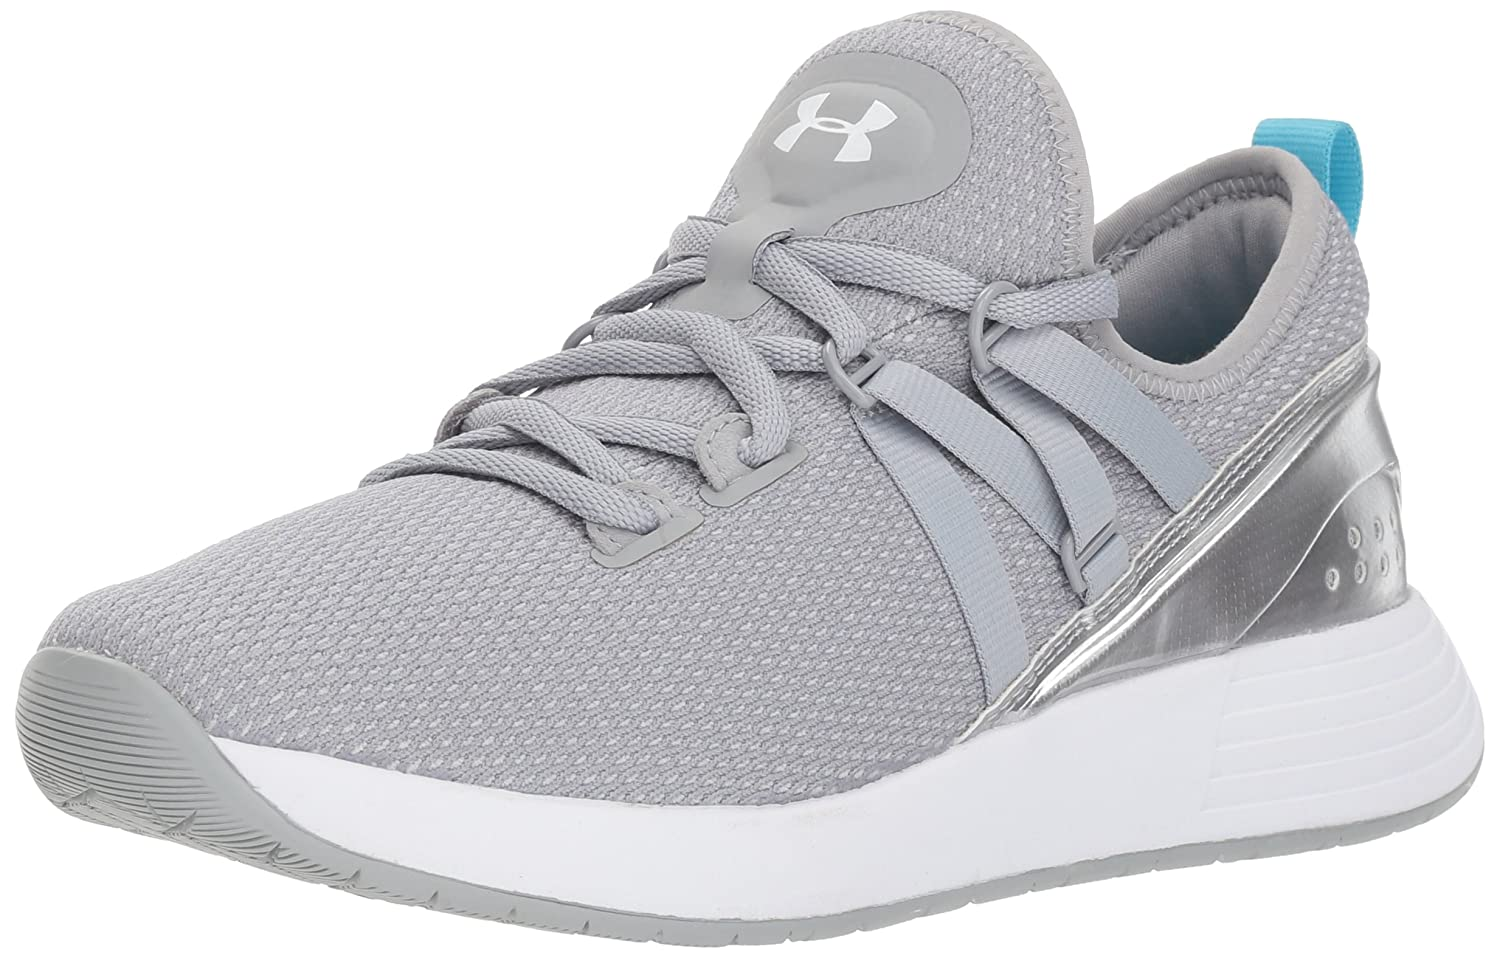 Under Armour Women's Breathe Trainer Sneaker B076S521WC 5.5 M US|Overcast Gray (101)/Metallic Silver